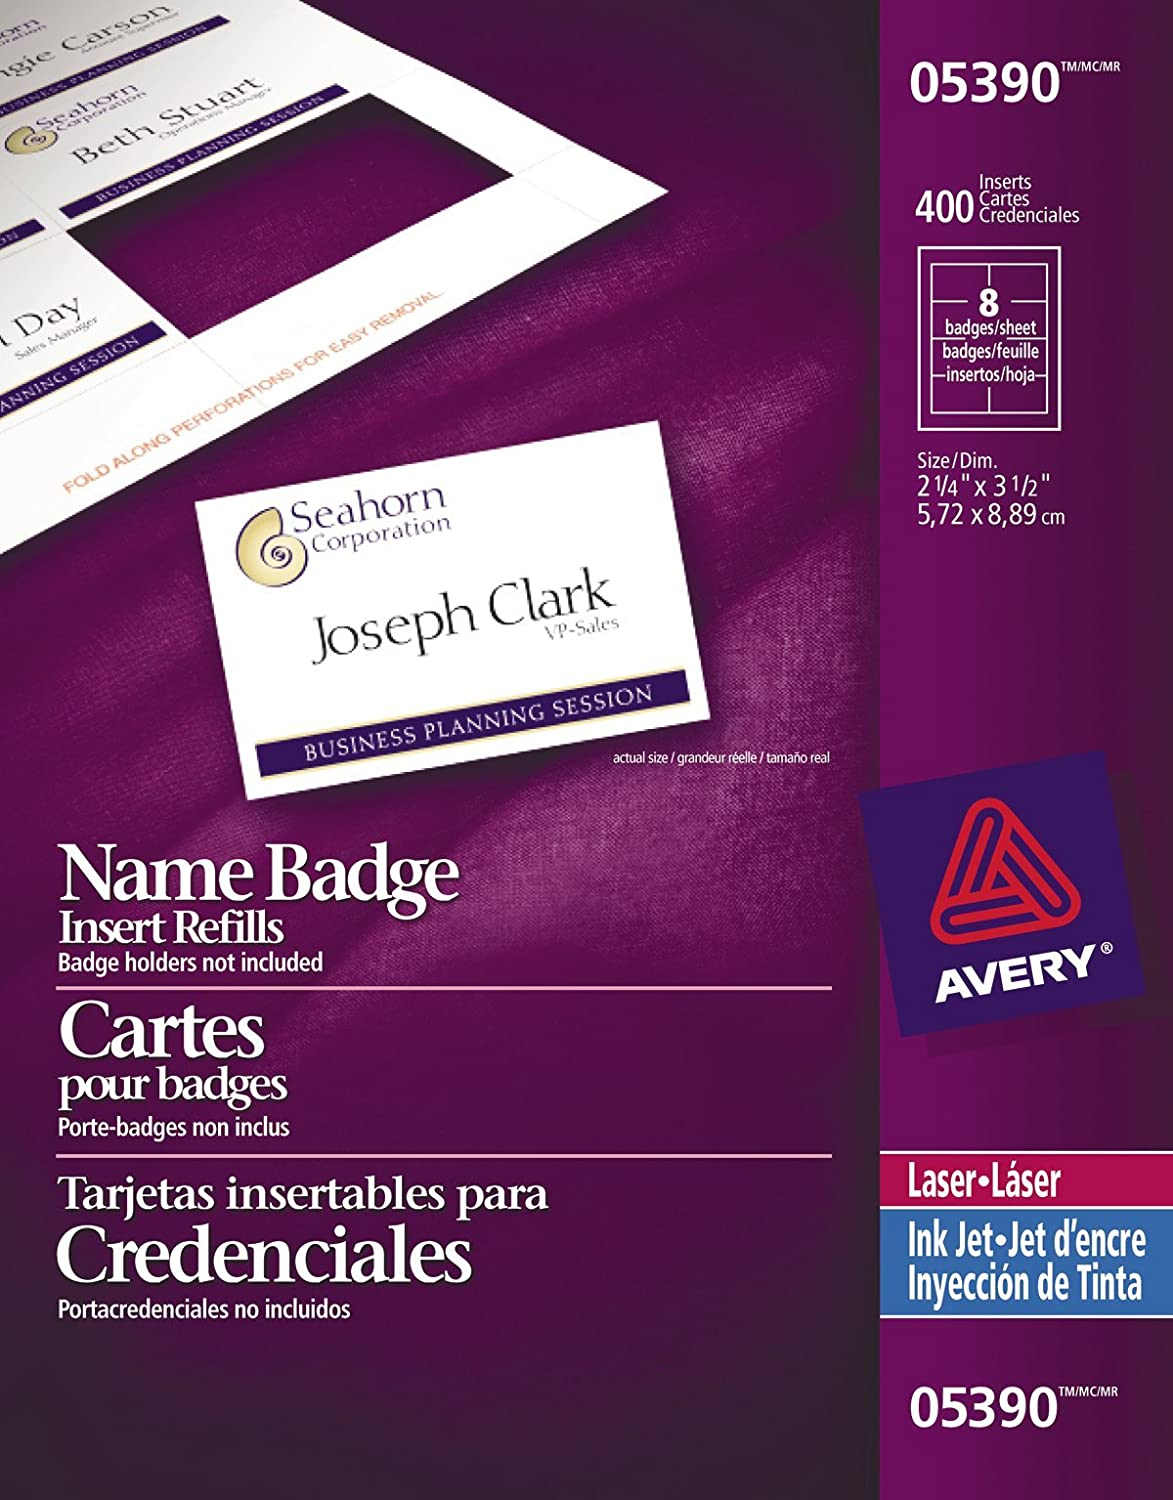 Avery Name Badge Inserts for Laser and Inkjet Printers, 2-1/4 x 3-1/2, White, 400 Pack (5390) 2-1/4 x 3-1/2 Avery Dennison CA